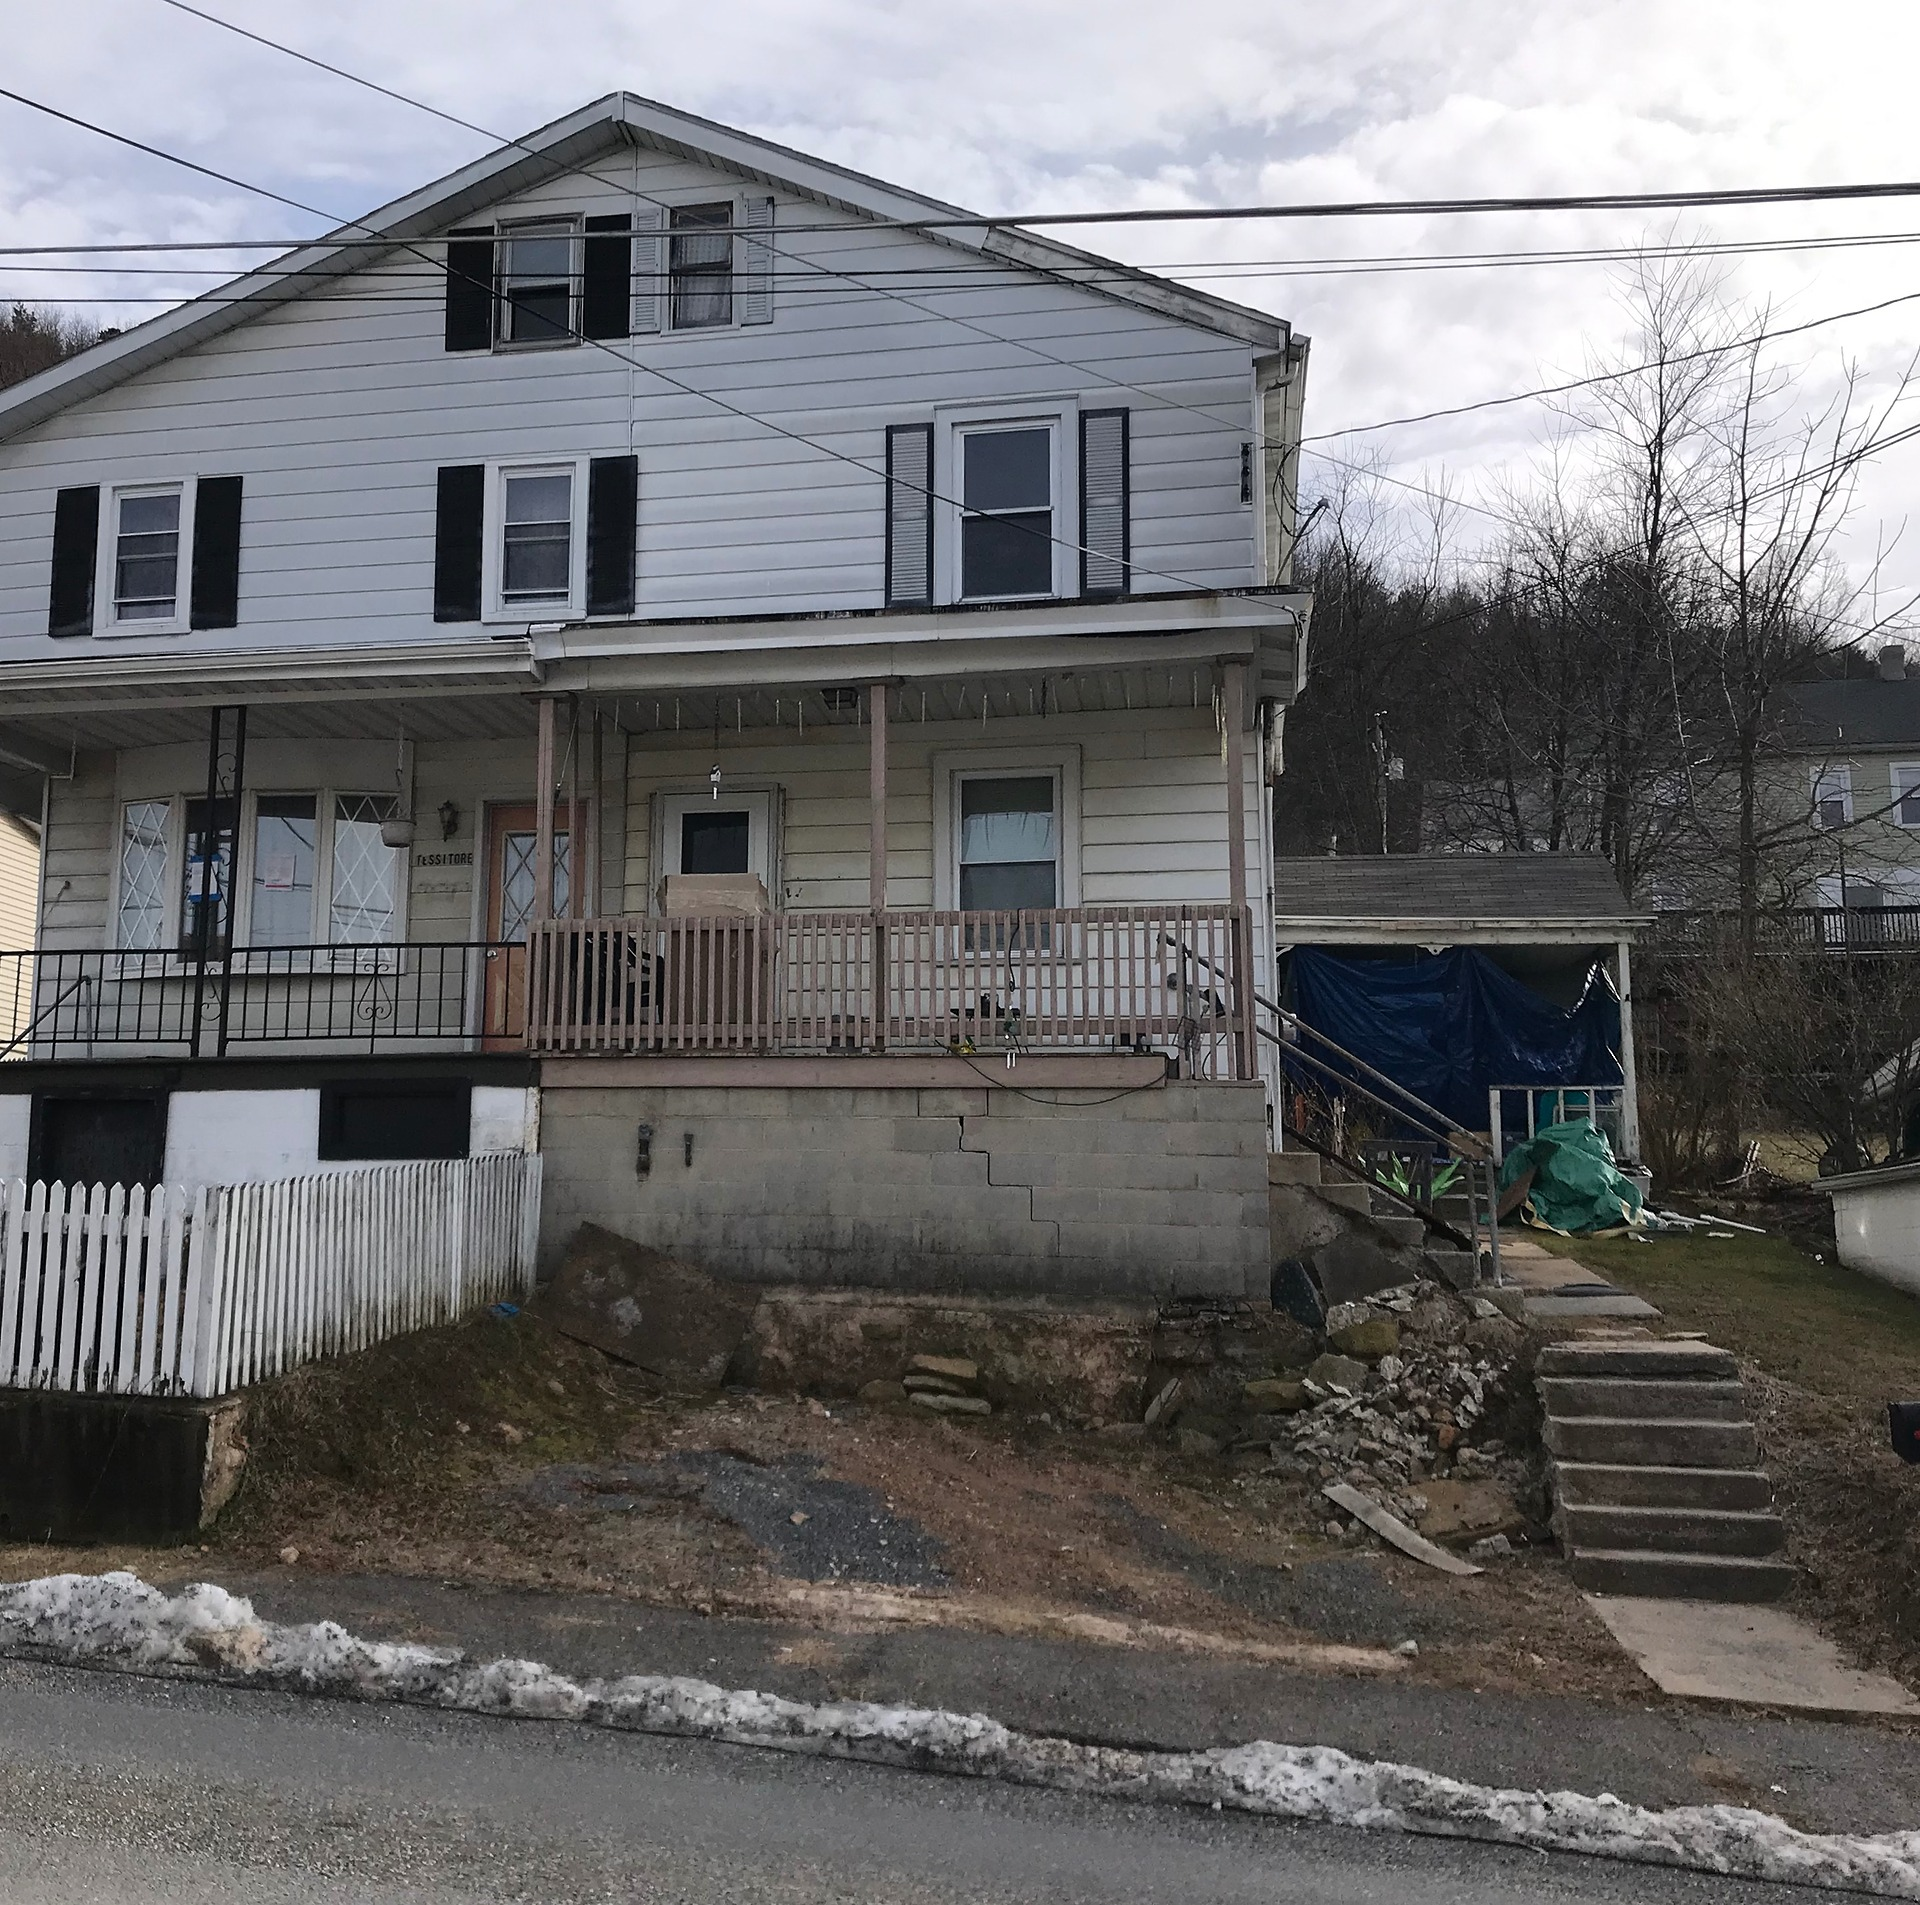 Nesquehoning - 4 Bedroom 2 Bath $50,000